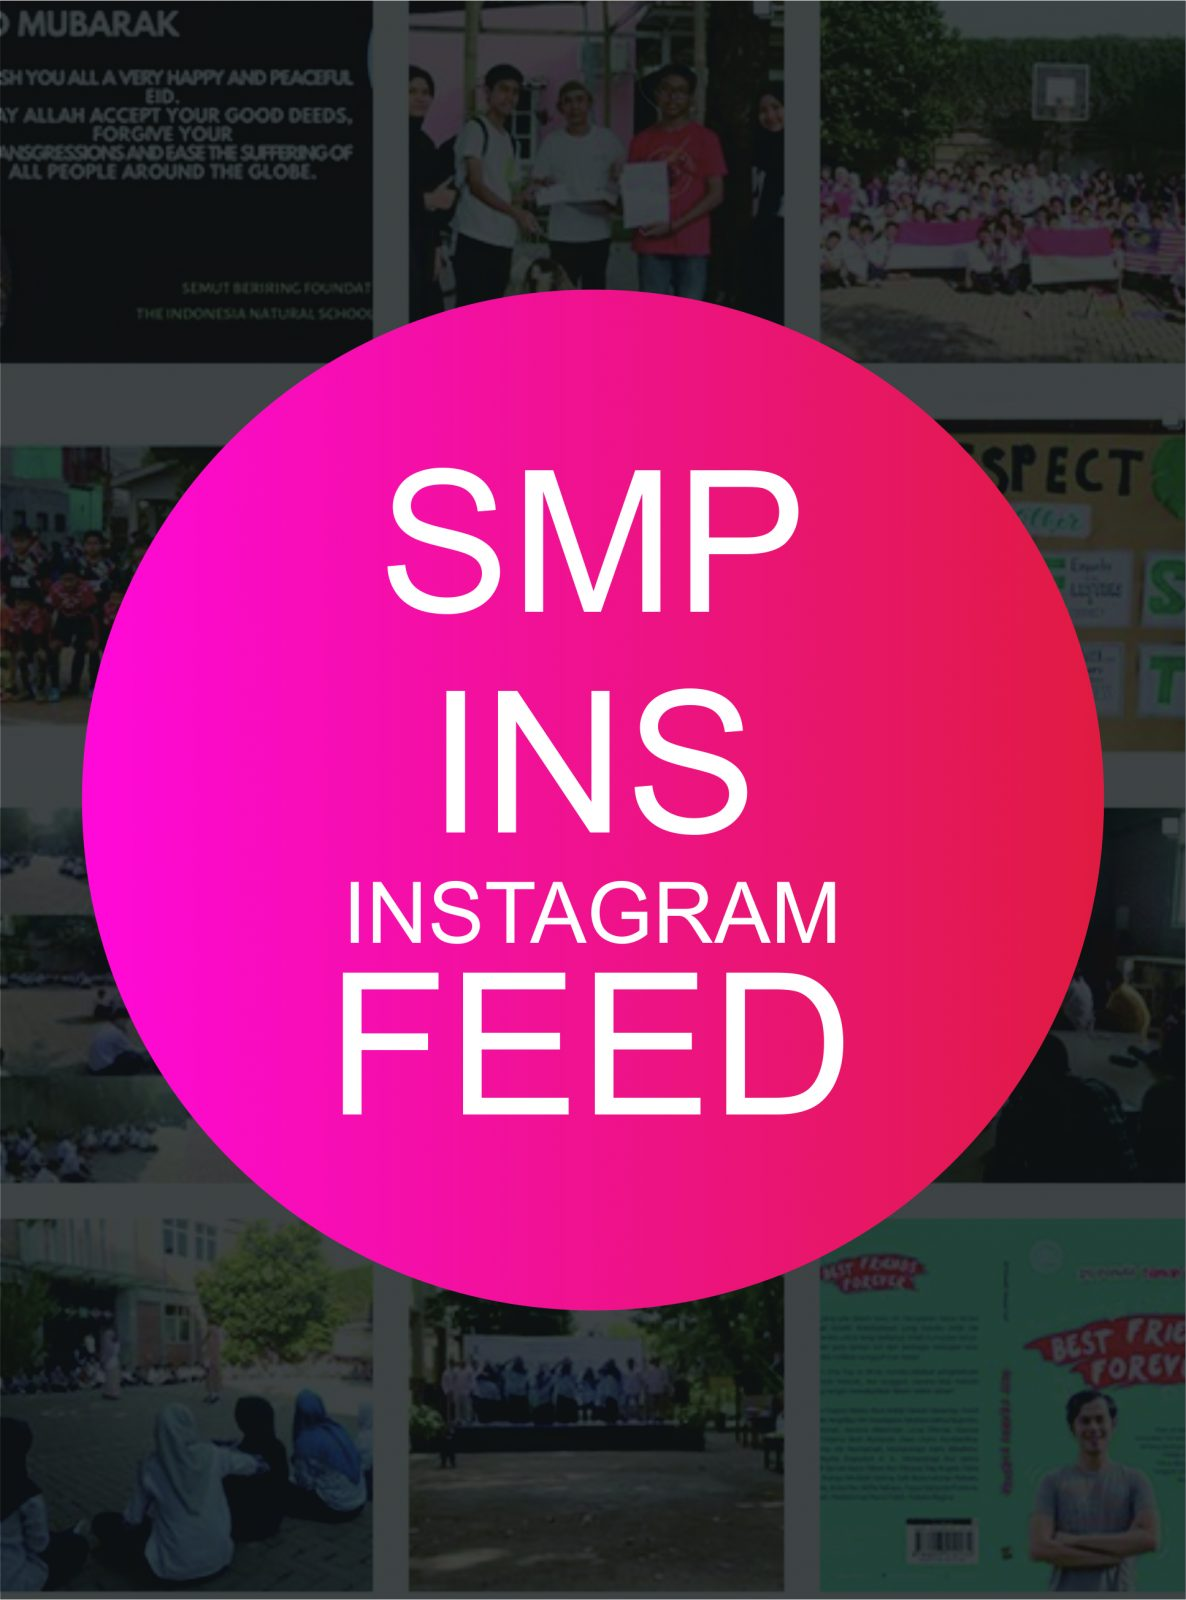 smp ins instagram feed